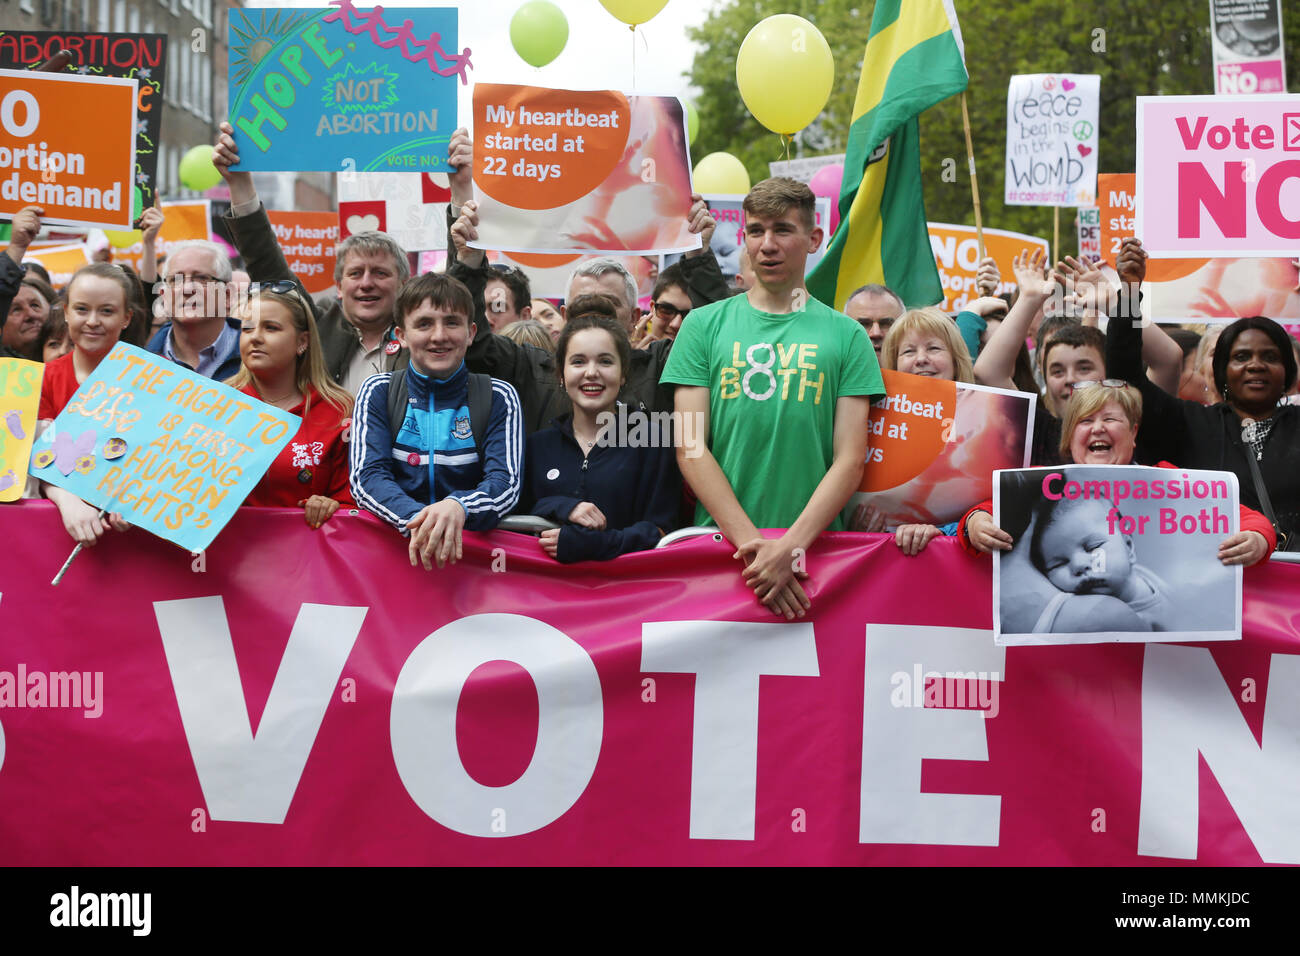 12/5/2018. Love Both Rally in Support of a No Vote in Irish Abortion Referendum, Dublin, Ireland Stock Photo